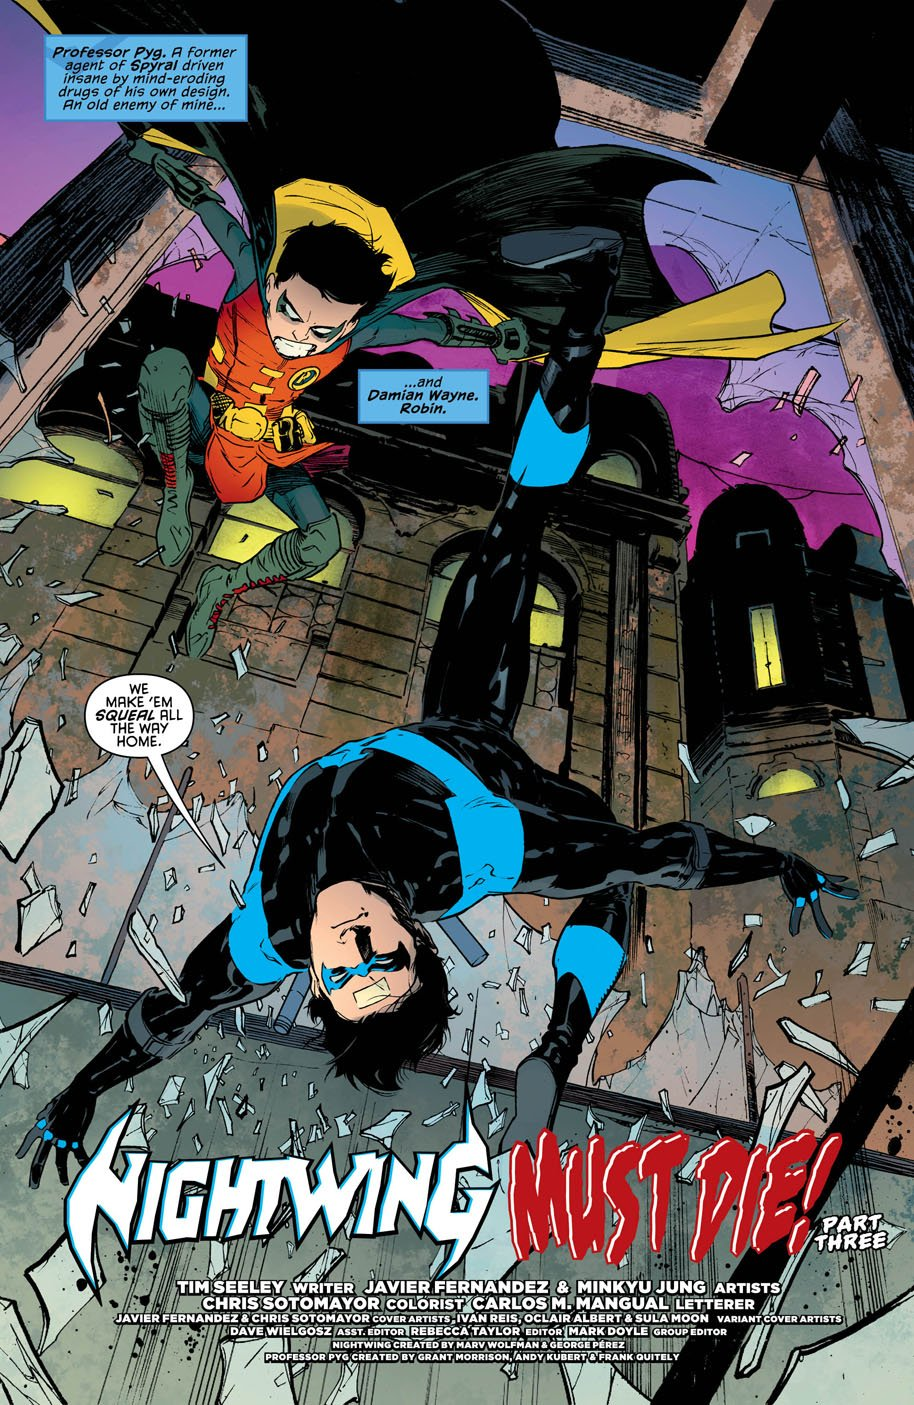 Nightwing 18 page 3